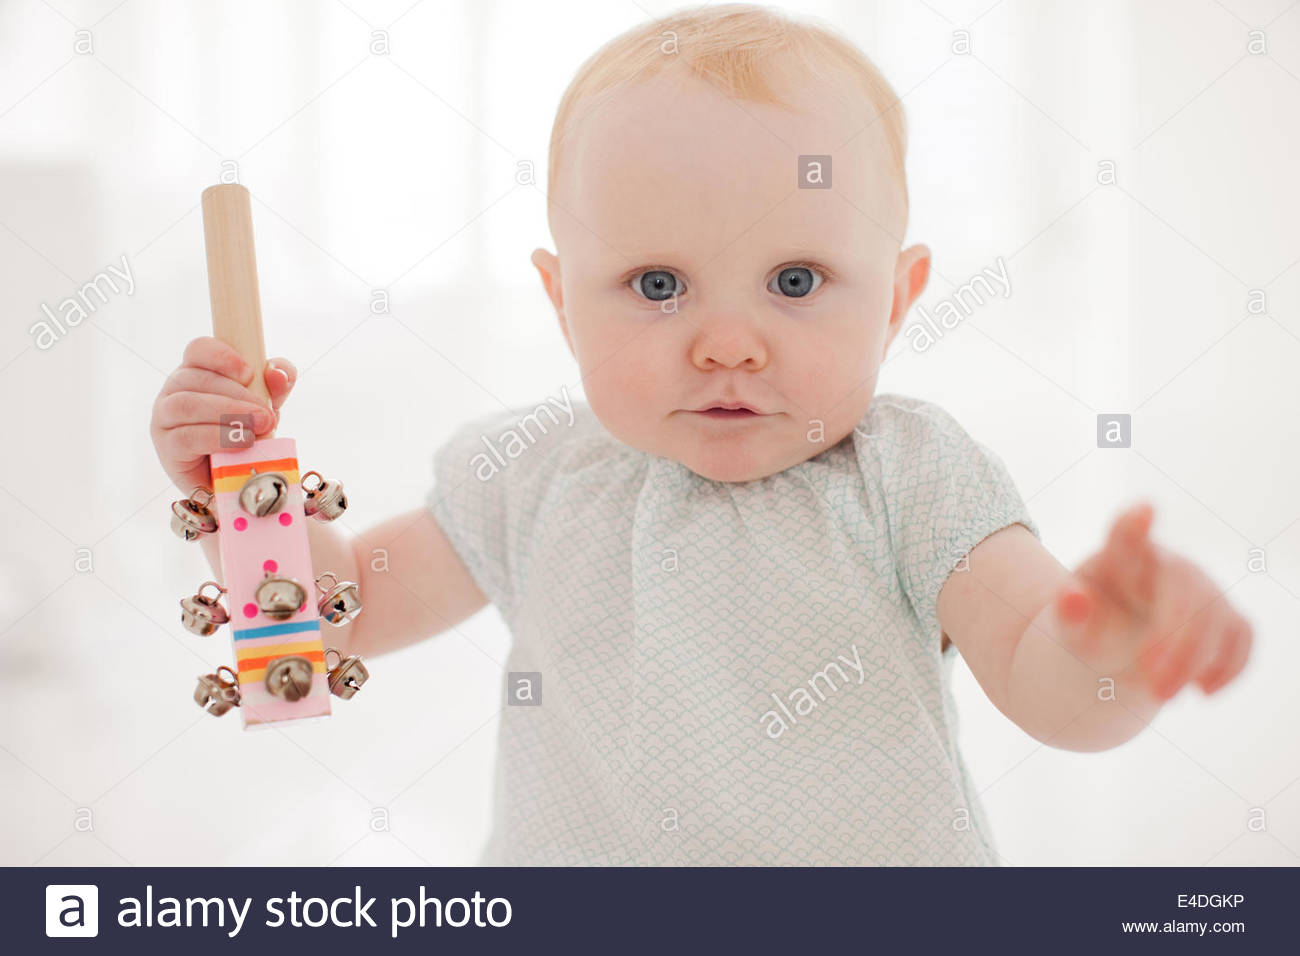 Baby sitting on floor - Stock Image